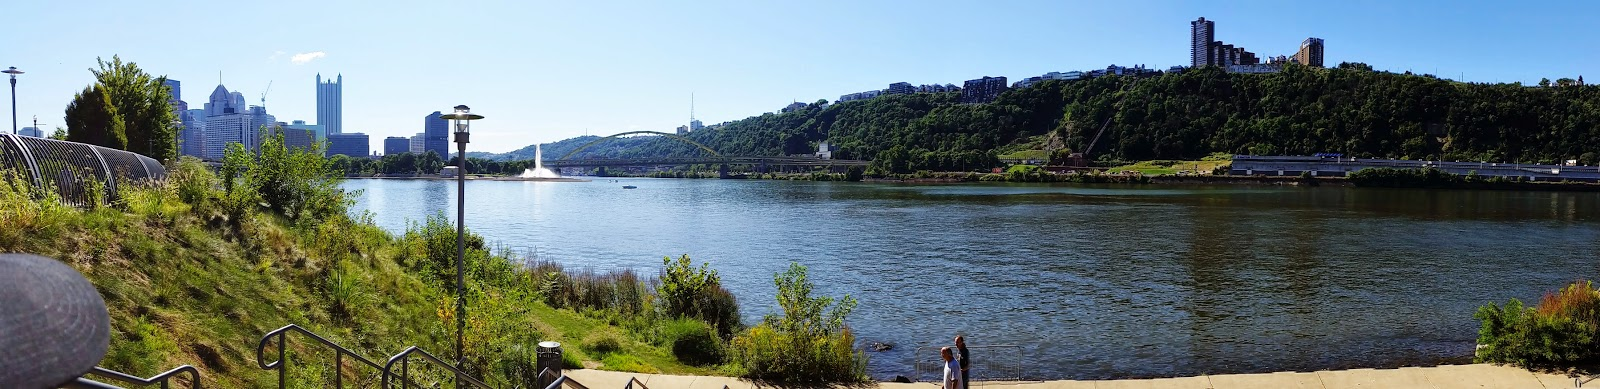 Pittsburgh riverfront